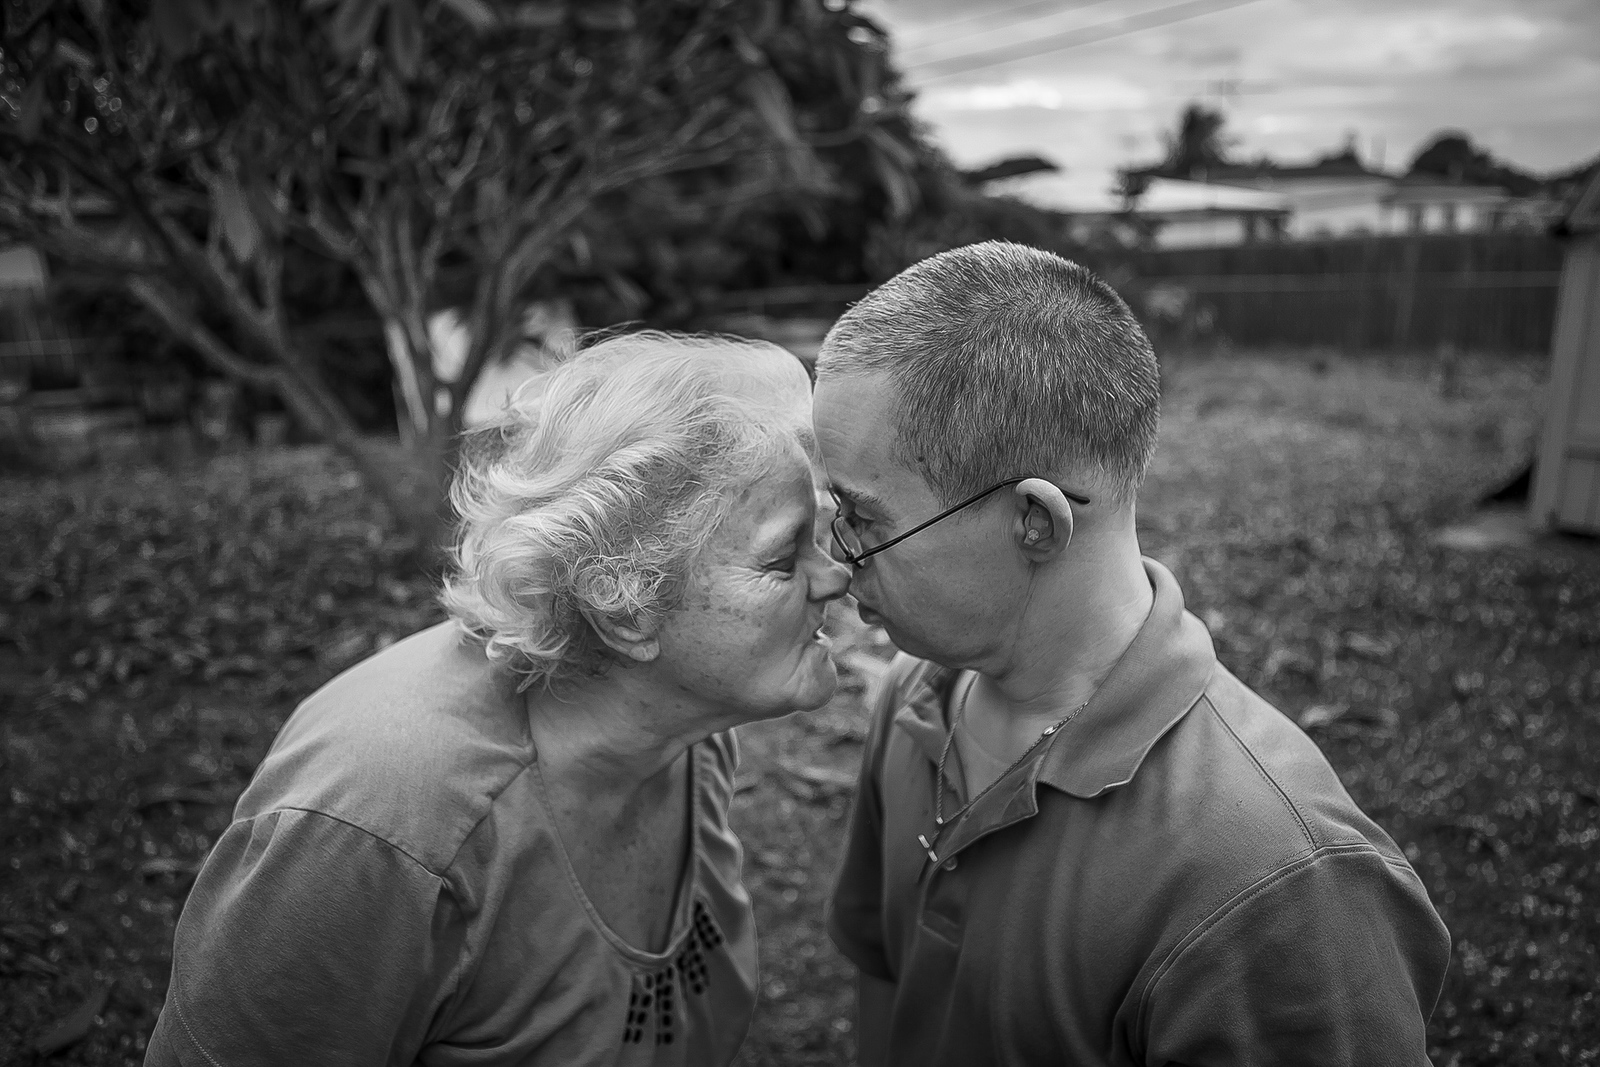 Wanna Tebby, 81,jokes around with her nephew Raymond Hommel, 49,in the backyard of their house. Wanna has taken complete care of Raymond, who has Down syndrome, since he was 14 years old. Wanna worries about both of them needing additional support as they age, but living apart is not an option.